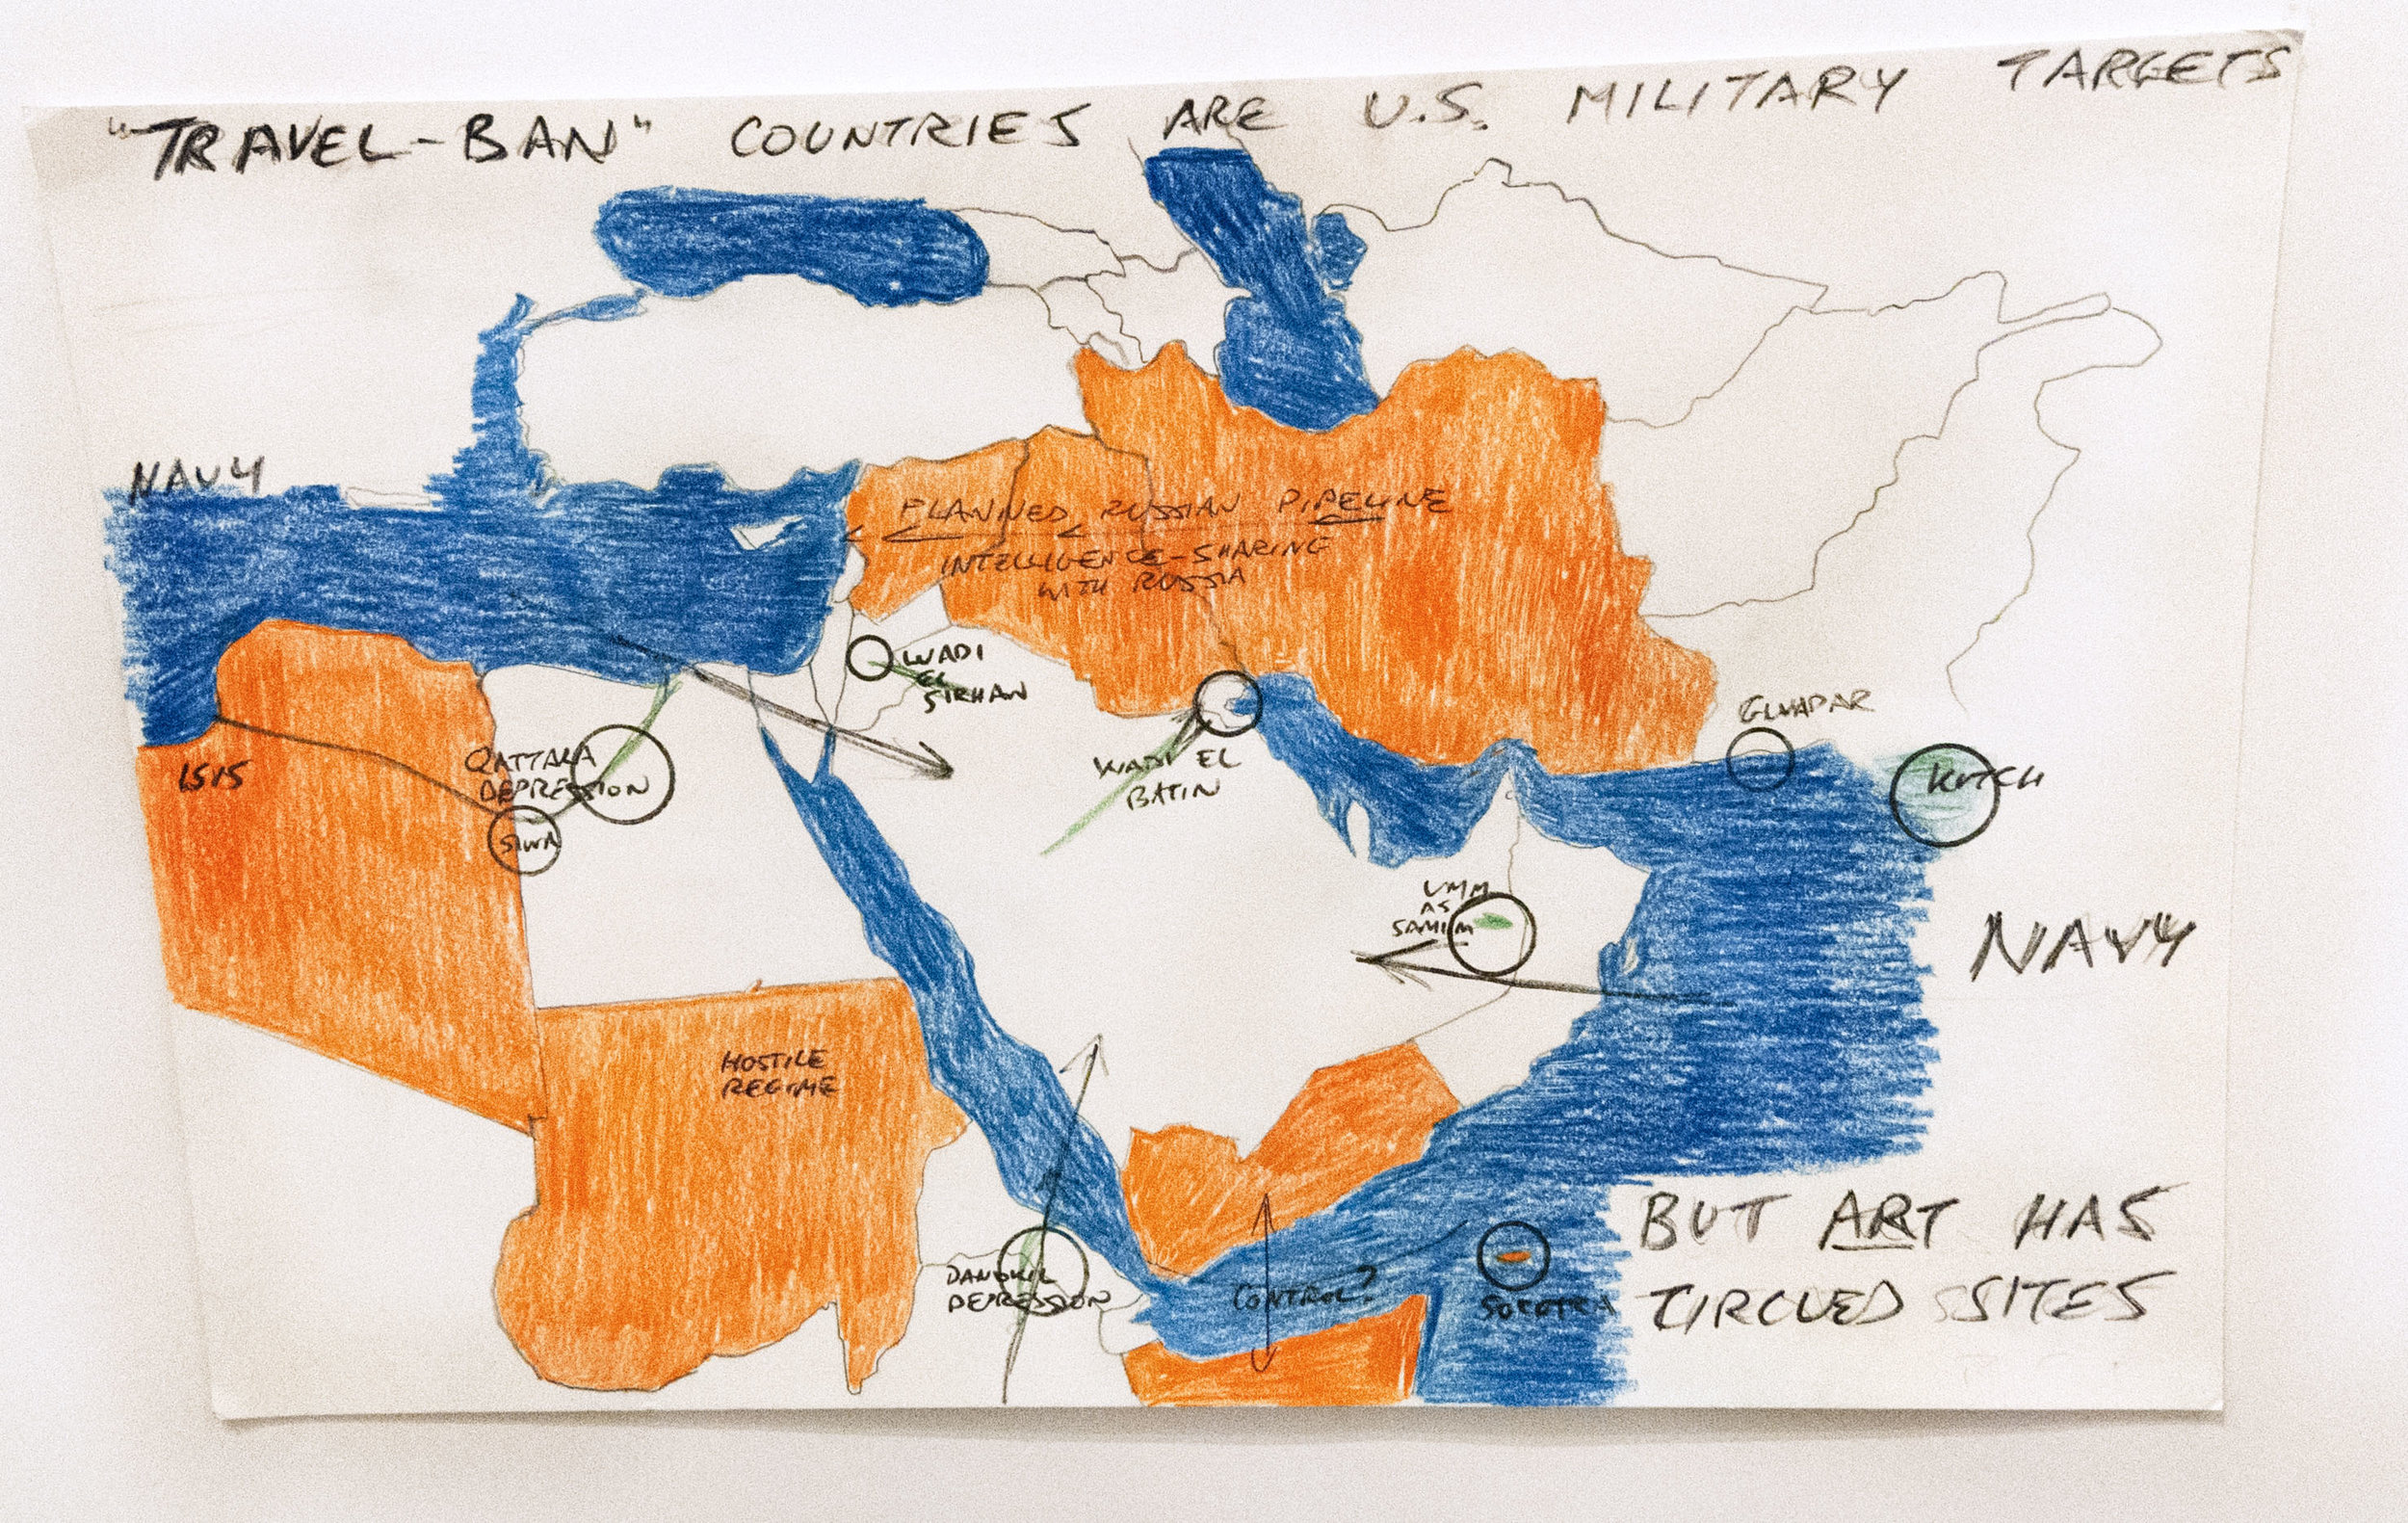 """A simple act of pulling out a political line-drawing map of the Middle East, which I have used as a template for works, and then marking up just WHERE the travel-ban is imposed, reveals that the travel-ban probably has nothing to do with Islam, or terrorism, or immigration. It has to do, as the markup shows, with arranging the region for military action.  Three of the travel-ban countries—Iran, Iraq, Syria—are being cajoled by Russia into sharing intelligence on stopping ISIS, okay, but more consequentially, for securing the route of a long-planned oil/gas pipeline from Iran through Iraq to Syria. If Russia succeeds, then it takes a huge chunk out of the Western control of Mideast oil secured with the end of World War One. This the US wants to prevent. Meantime, the US tries to secure the Red Sea better, meaning it must fend off anti-Saudi and hostile activity on both sides of the Gulf of Aden, being Yemen and Somalia, and it must also reduce threats from a long-time foe, Sudan. The US already took South Sudan away from Sudan, and has been pulling on the Darfur area to the West, so Sudan is understandably hostile. Libya is in turmoil, is controlled largely by ISIS and other hostile or outright renegade forces, so it will also be subject to military attack. The orange countries marked here simply are the targets for US military planners. All the white countries are not targets. One can propose ecological-restoration projects there, by the same US aircraft, as the """"Art... circled sites."""" The blue, being Sea, is also highlighted to indicate where the US has free range without permission by any State: it's Navy area. Such a map is very likely now in the hands of US Navy officers in the region. Their freedom of maneuver is very separately in the Arabian Sea, with passage past choke points into the Red Sea and Arabian/Persian Gulf, and in the Mediterranean Sea. Probably no US warships will attempt passage in these days through the Suez Canal."""